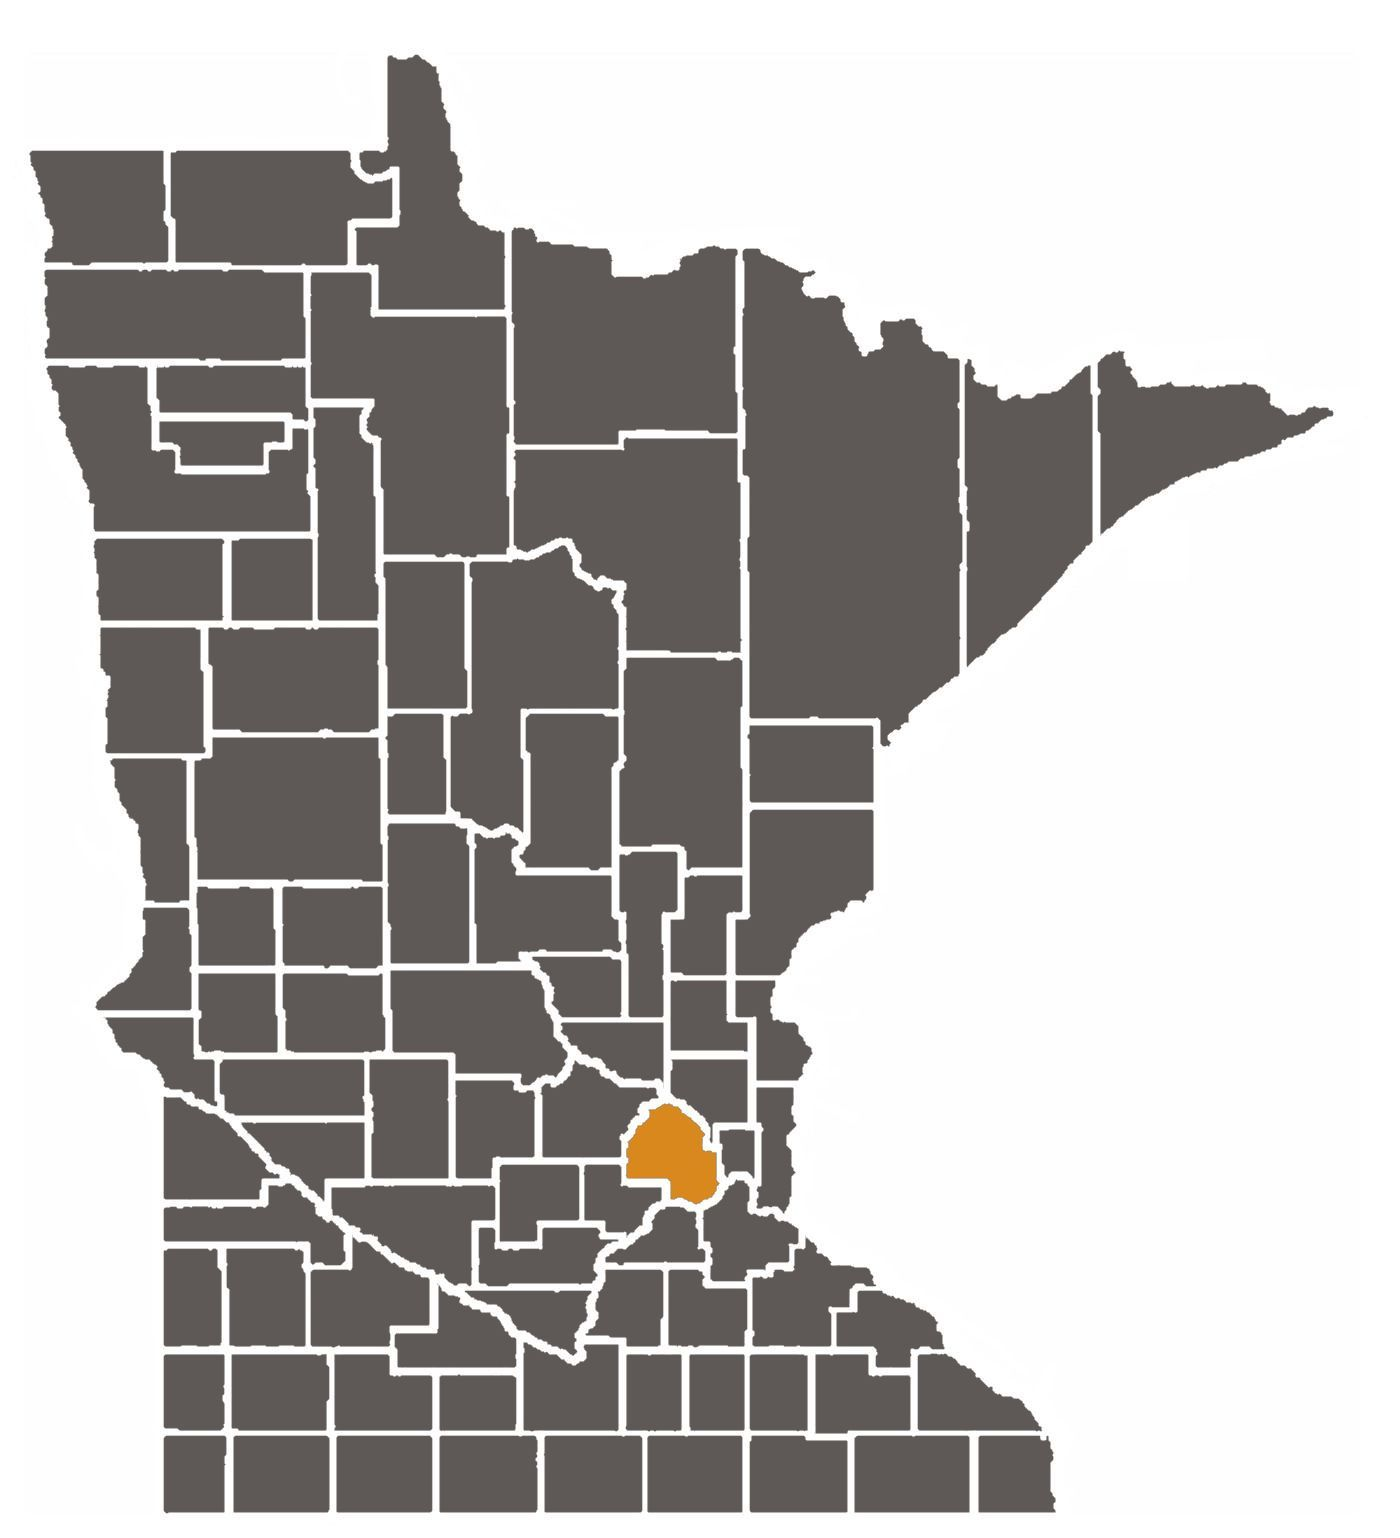 Map of Minnesota with Hennepin County highlighted